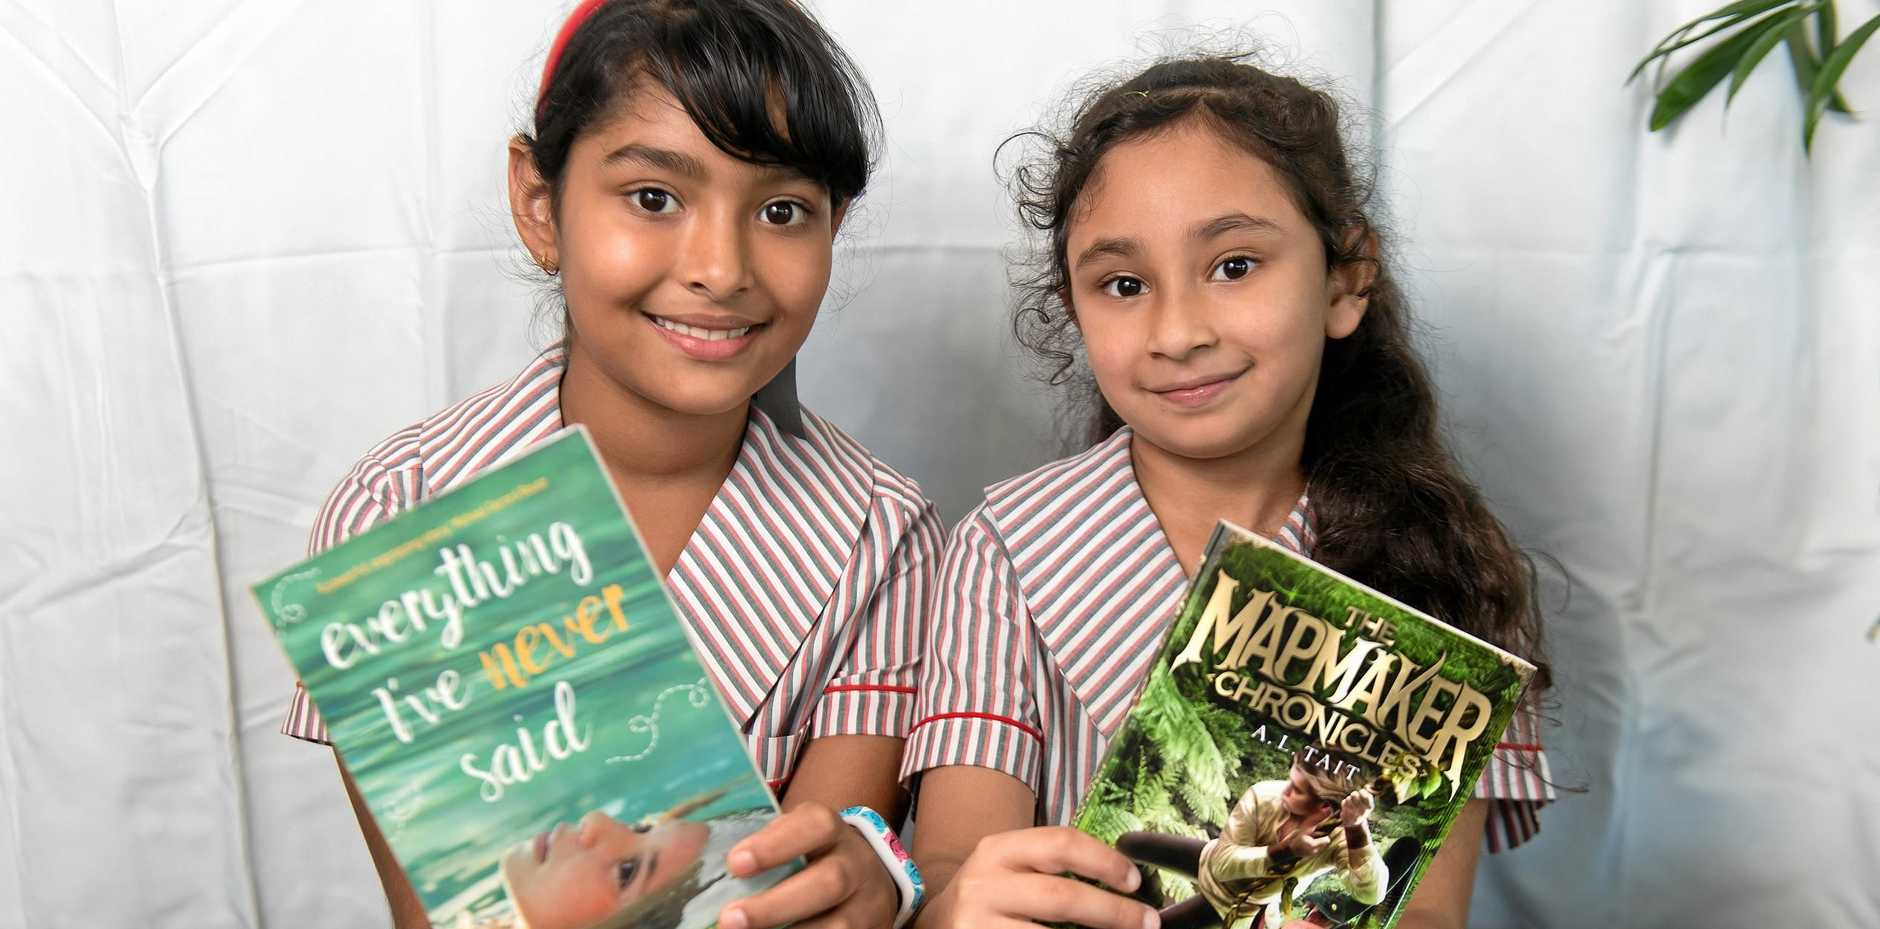 BOOK FESTIVAL: Tiana Sebastian, 8, and Umaiza Rashid, 7, with their favourite books by the authors in the Whitsunday Voices Youth Literature Festival.